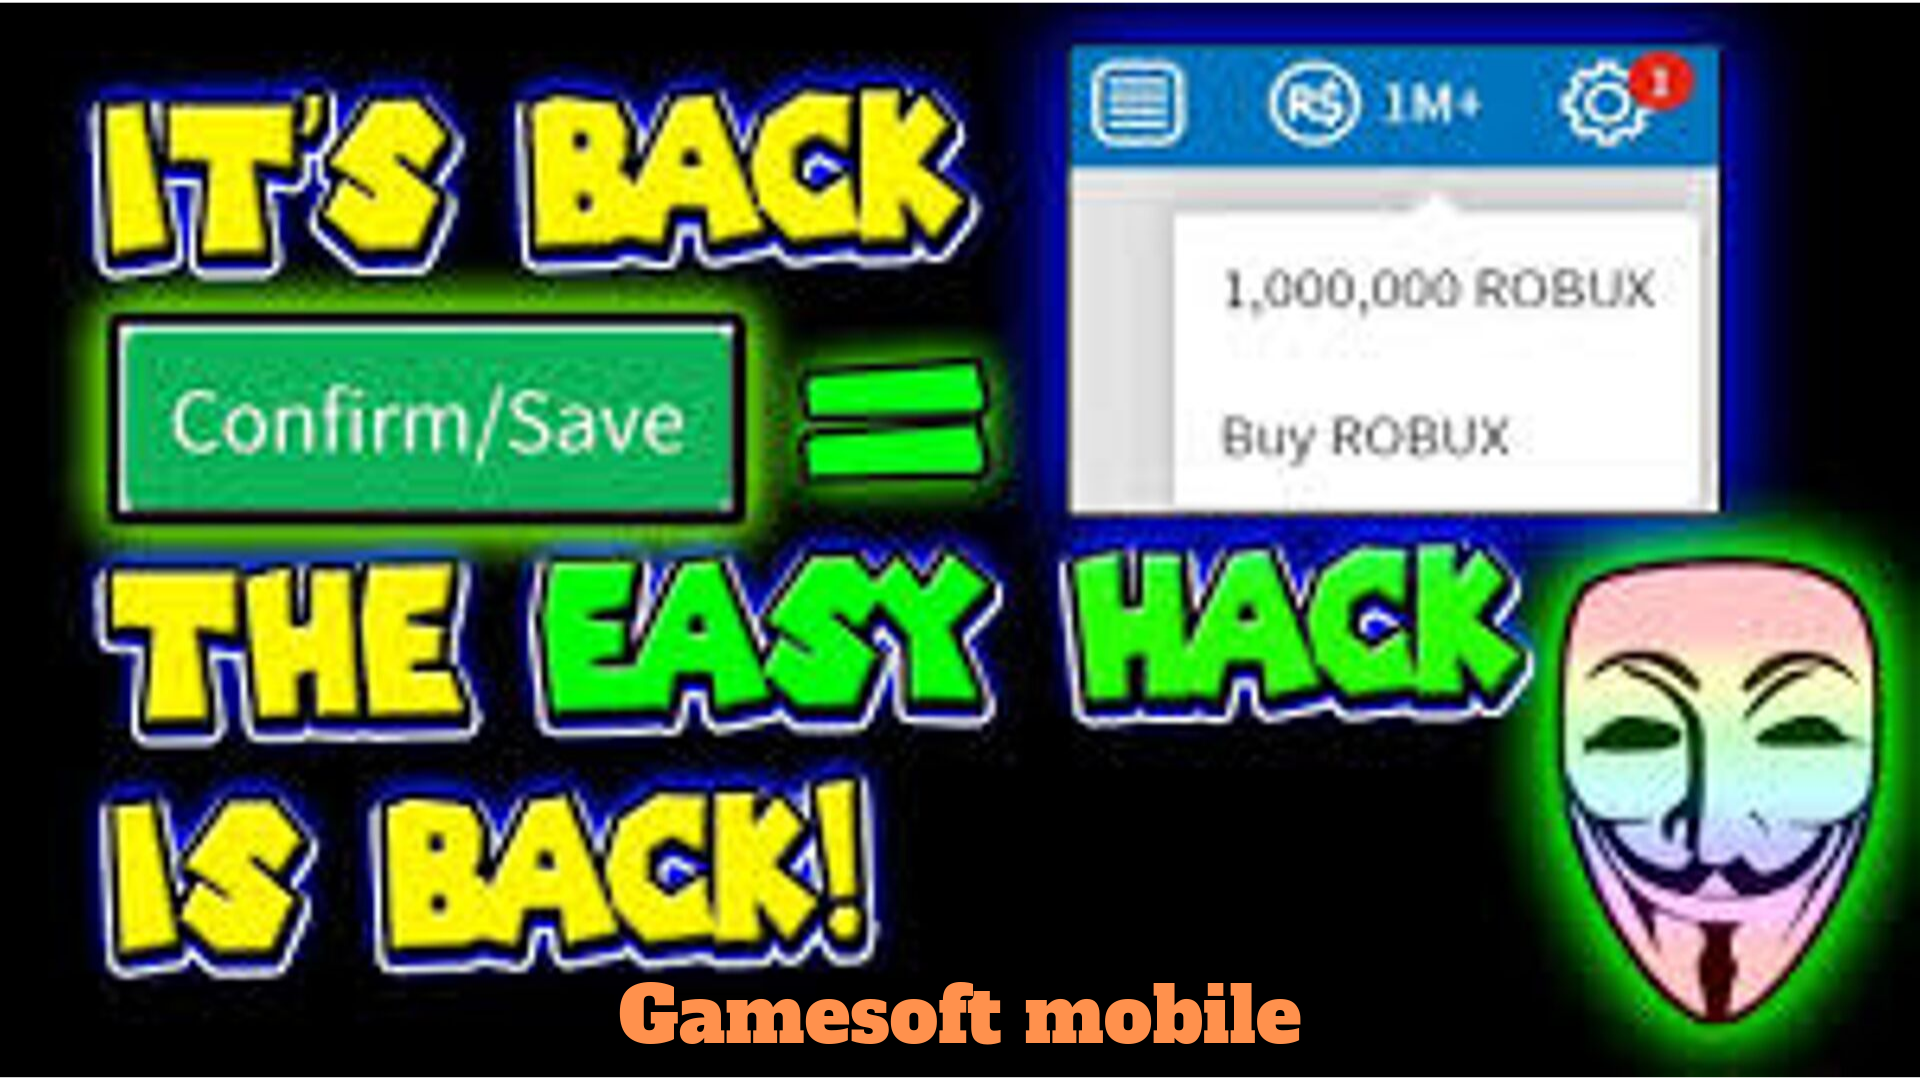 How To Gamesoftmobile Roblox Robux Hack By Abraham Technology